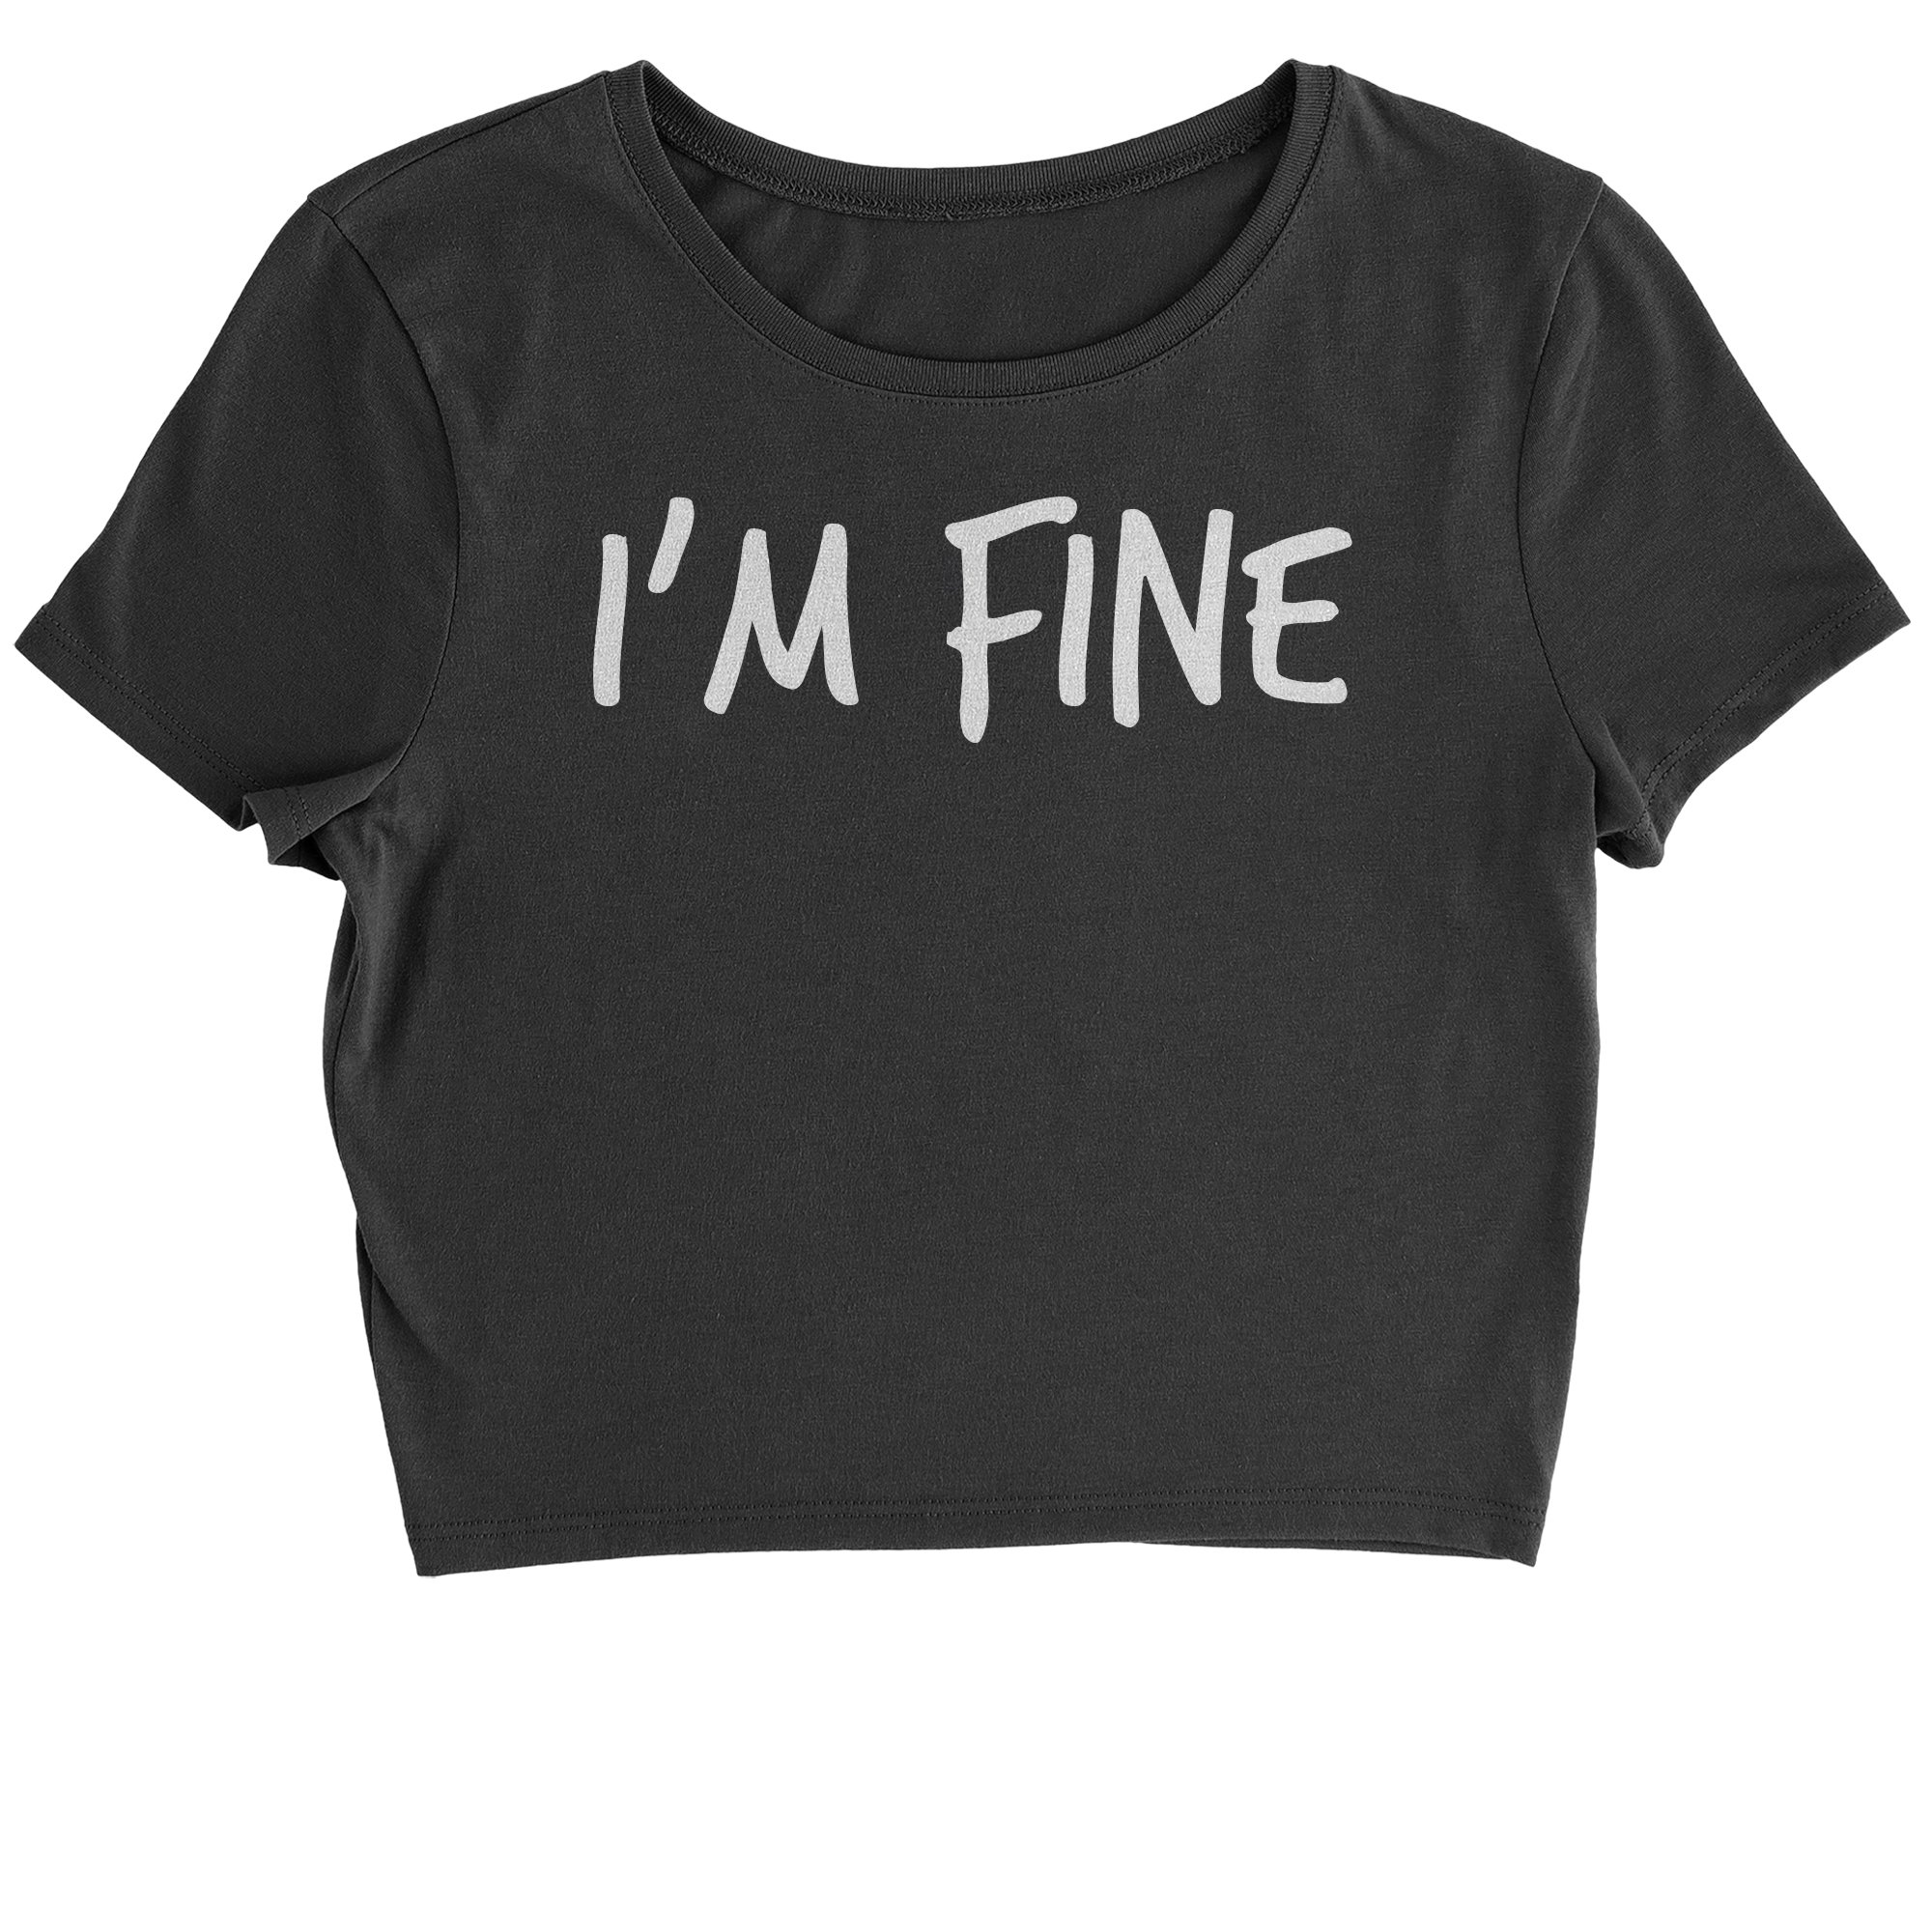 Expression Tees Cropped T-Shirt I'm Fine T-Shirt Small Black